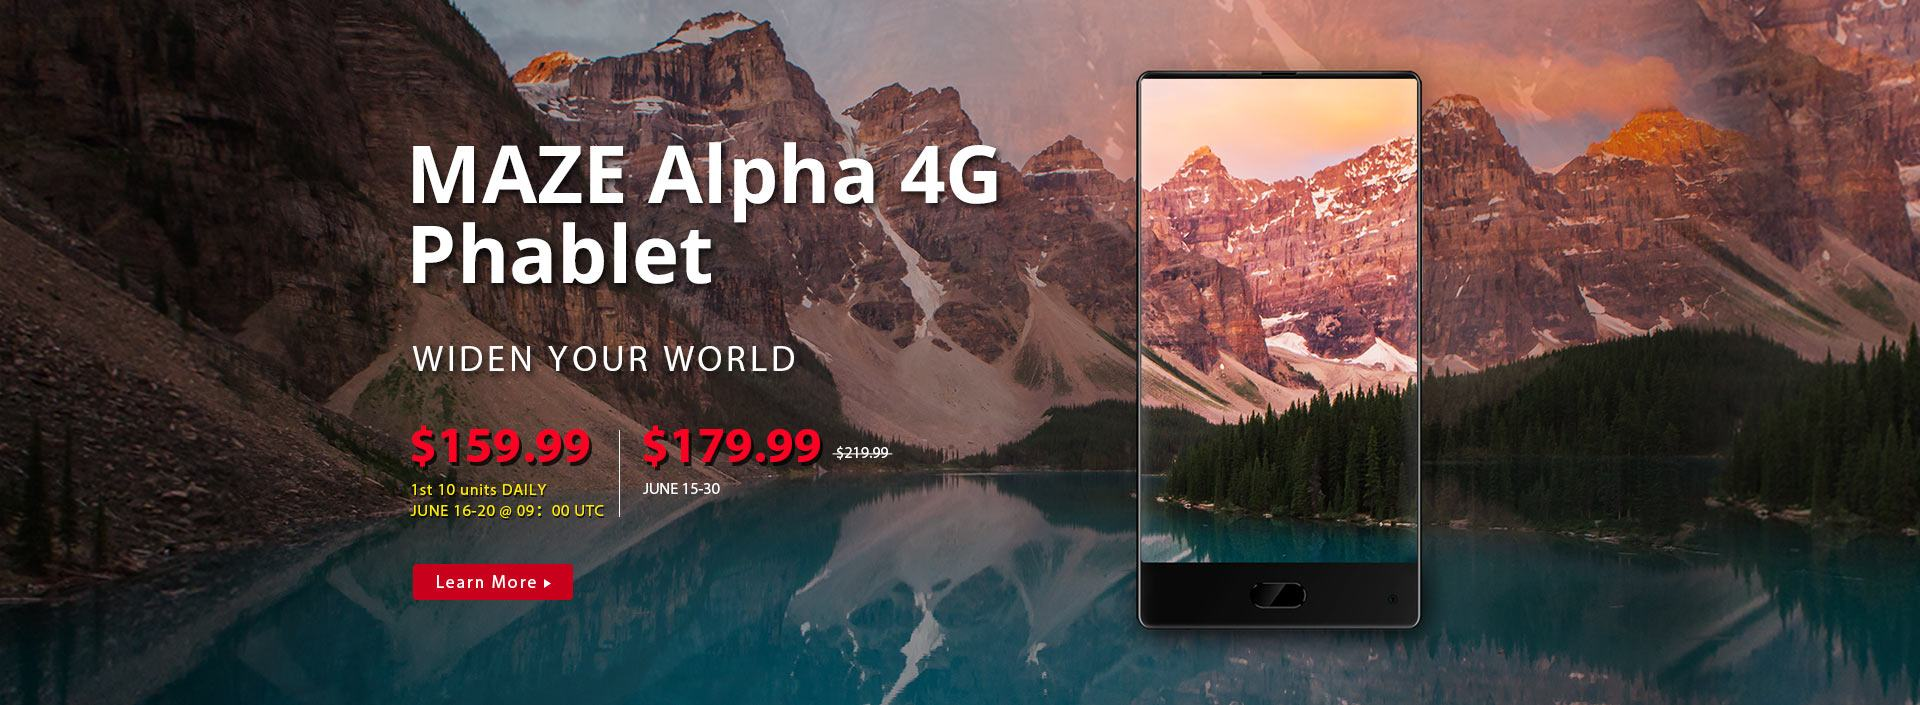 The 2017 Top Android Telephone MAZE Alpha 4G Phablet Flash Sale from $159.99